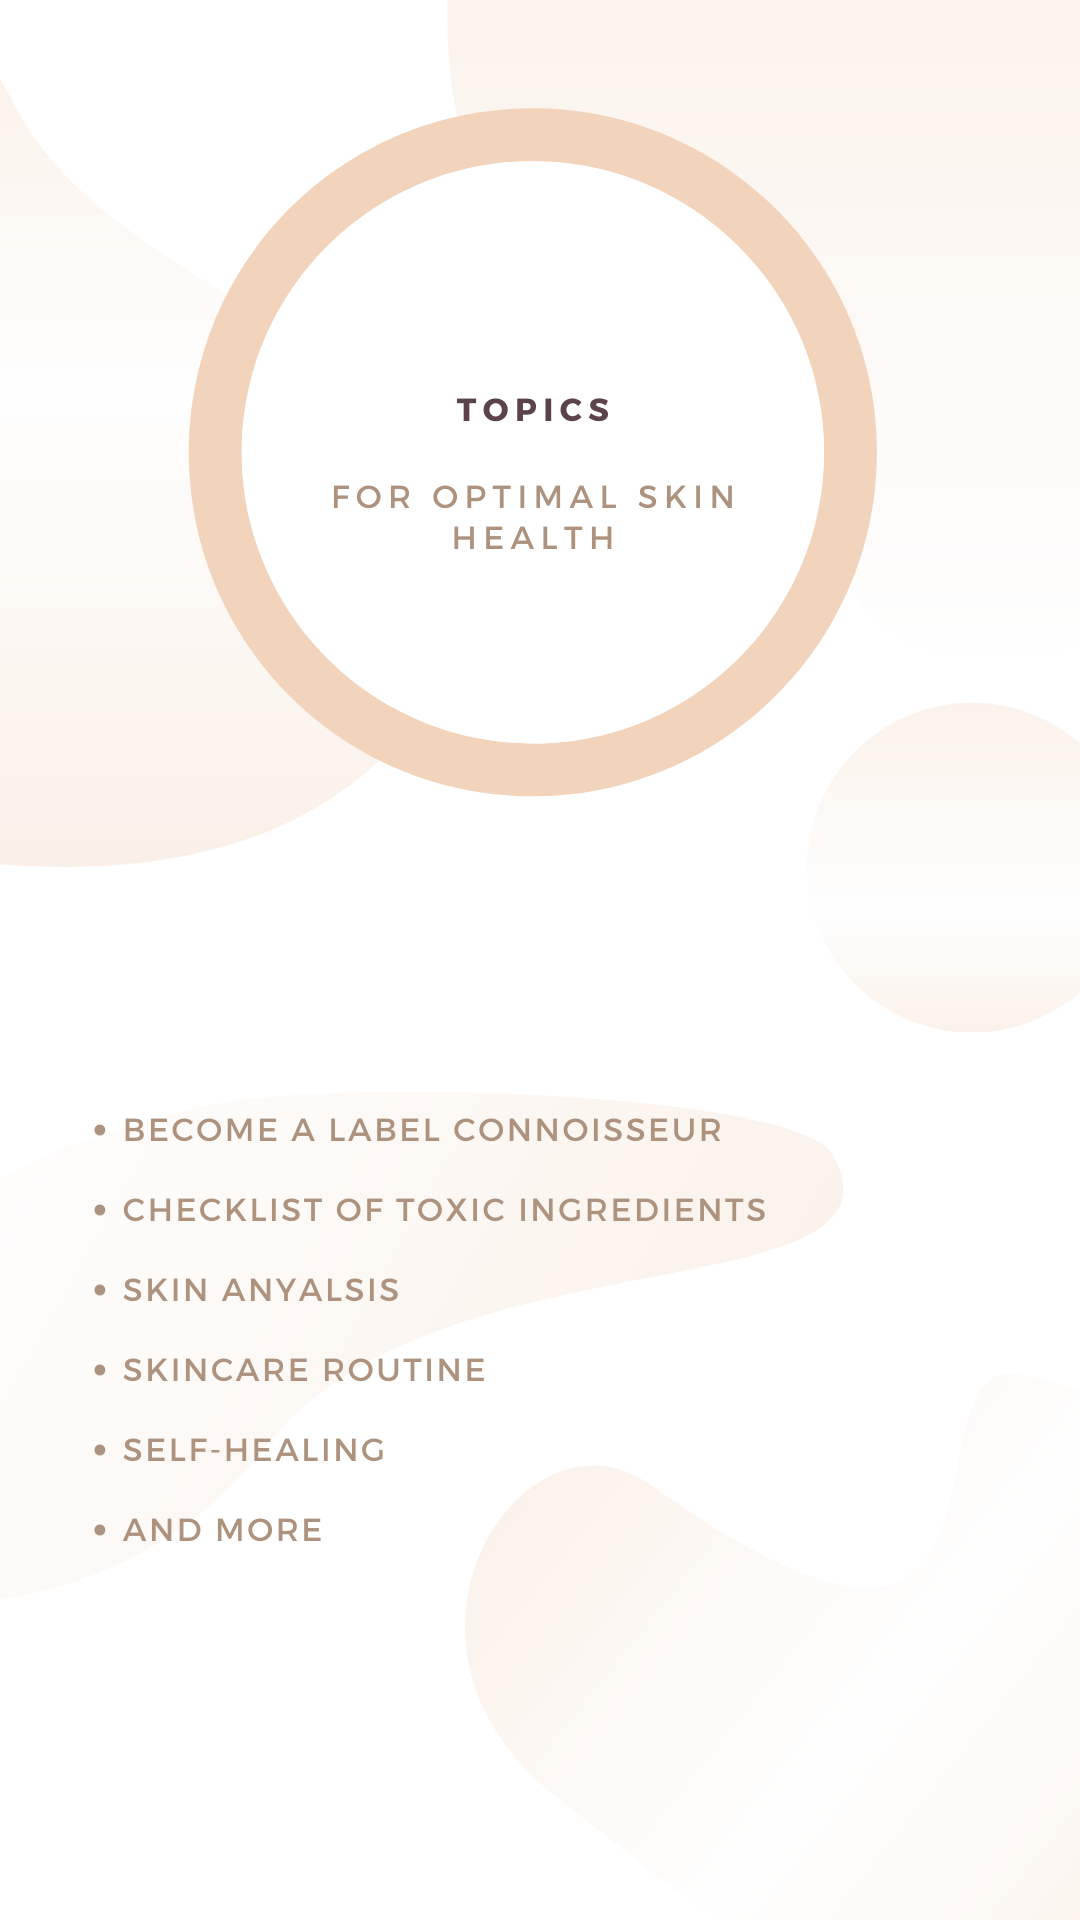 The L.A. Glow Clear Skin Guide via Consultation Questionnaire